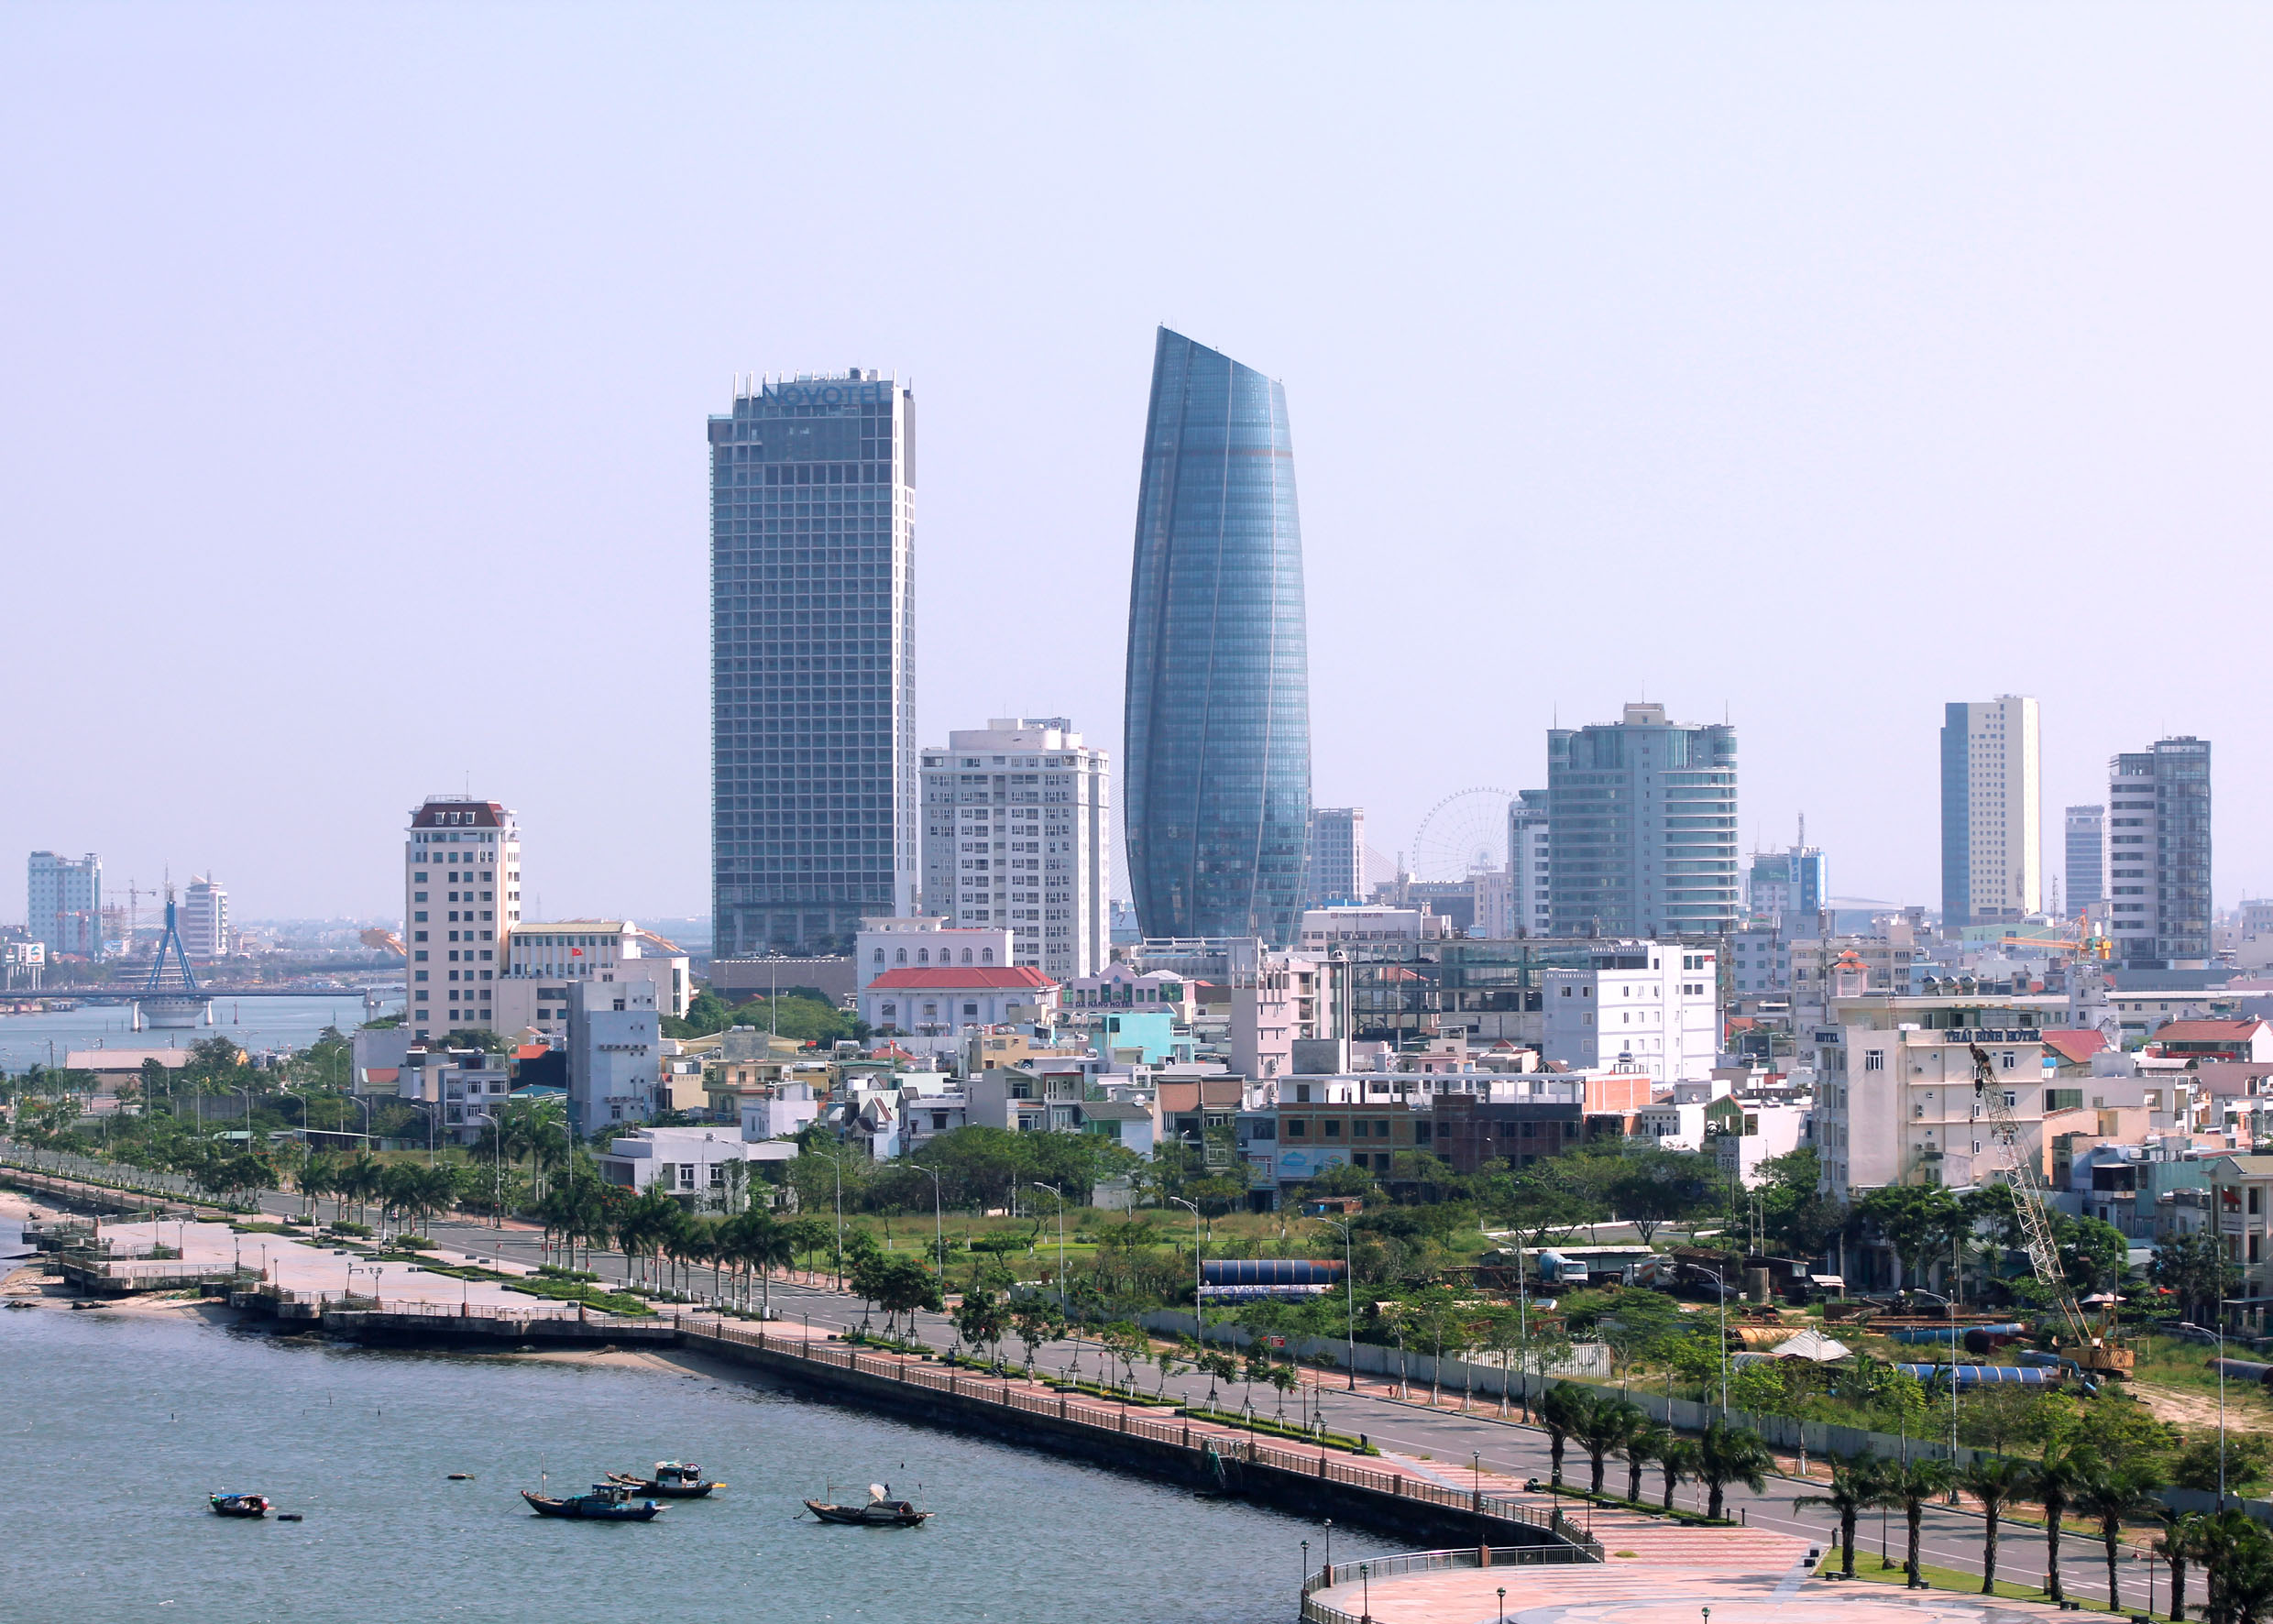 Da Nang is simply modern and active in the day time